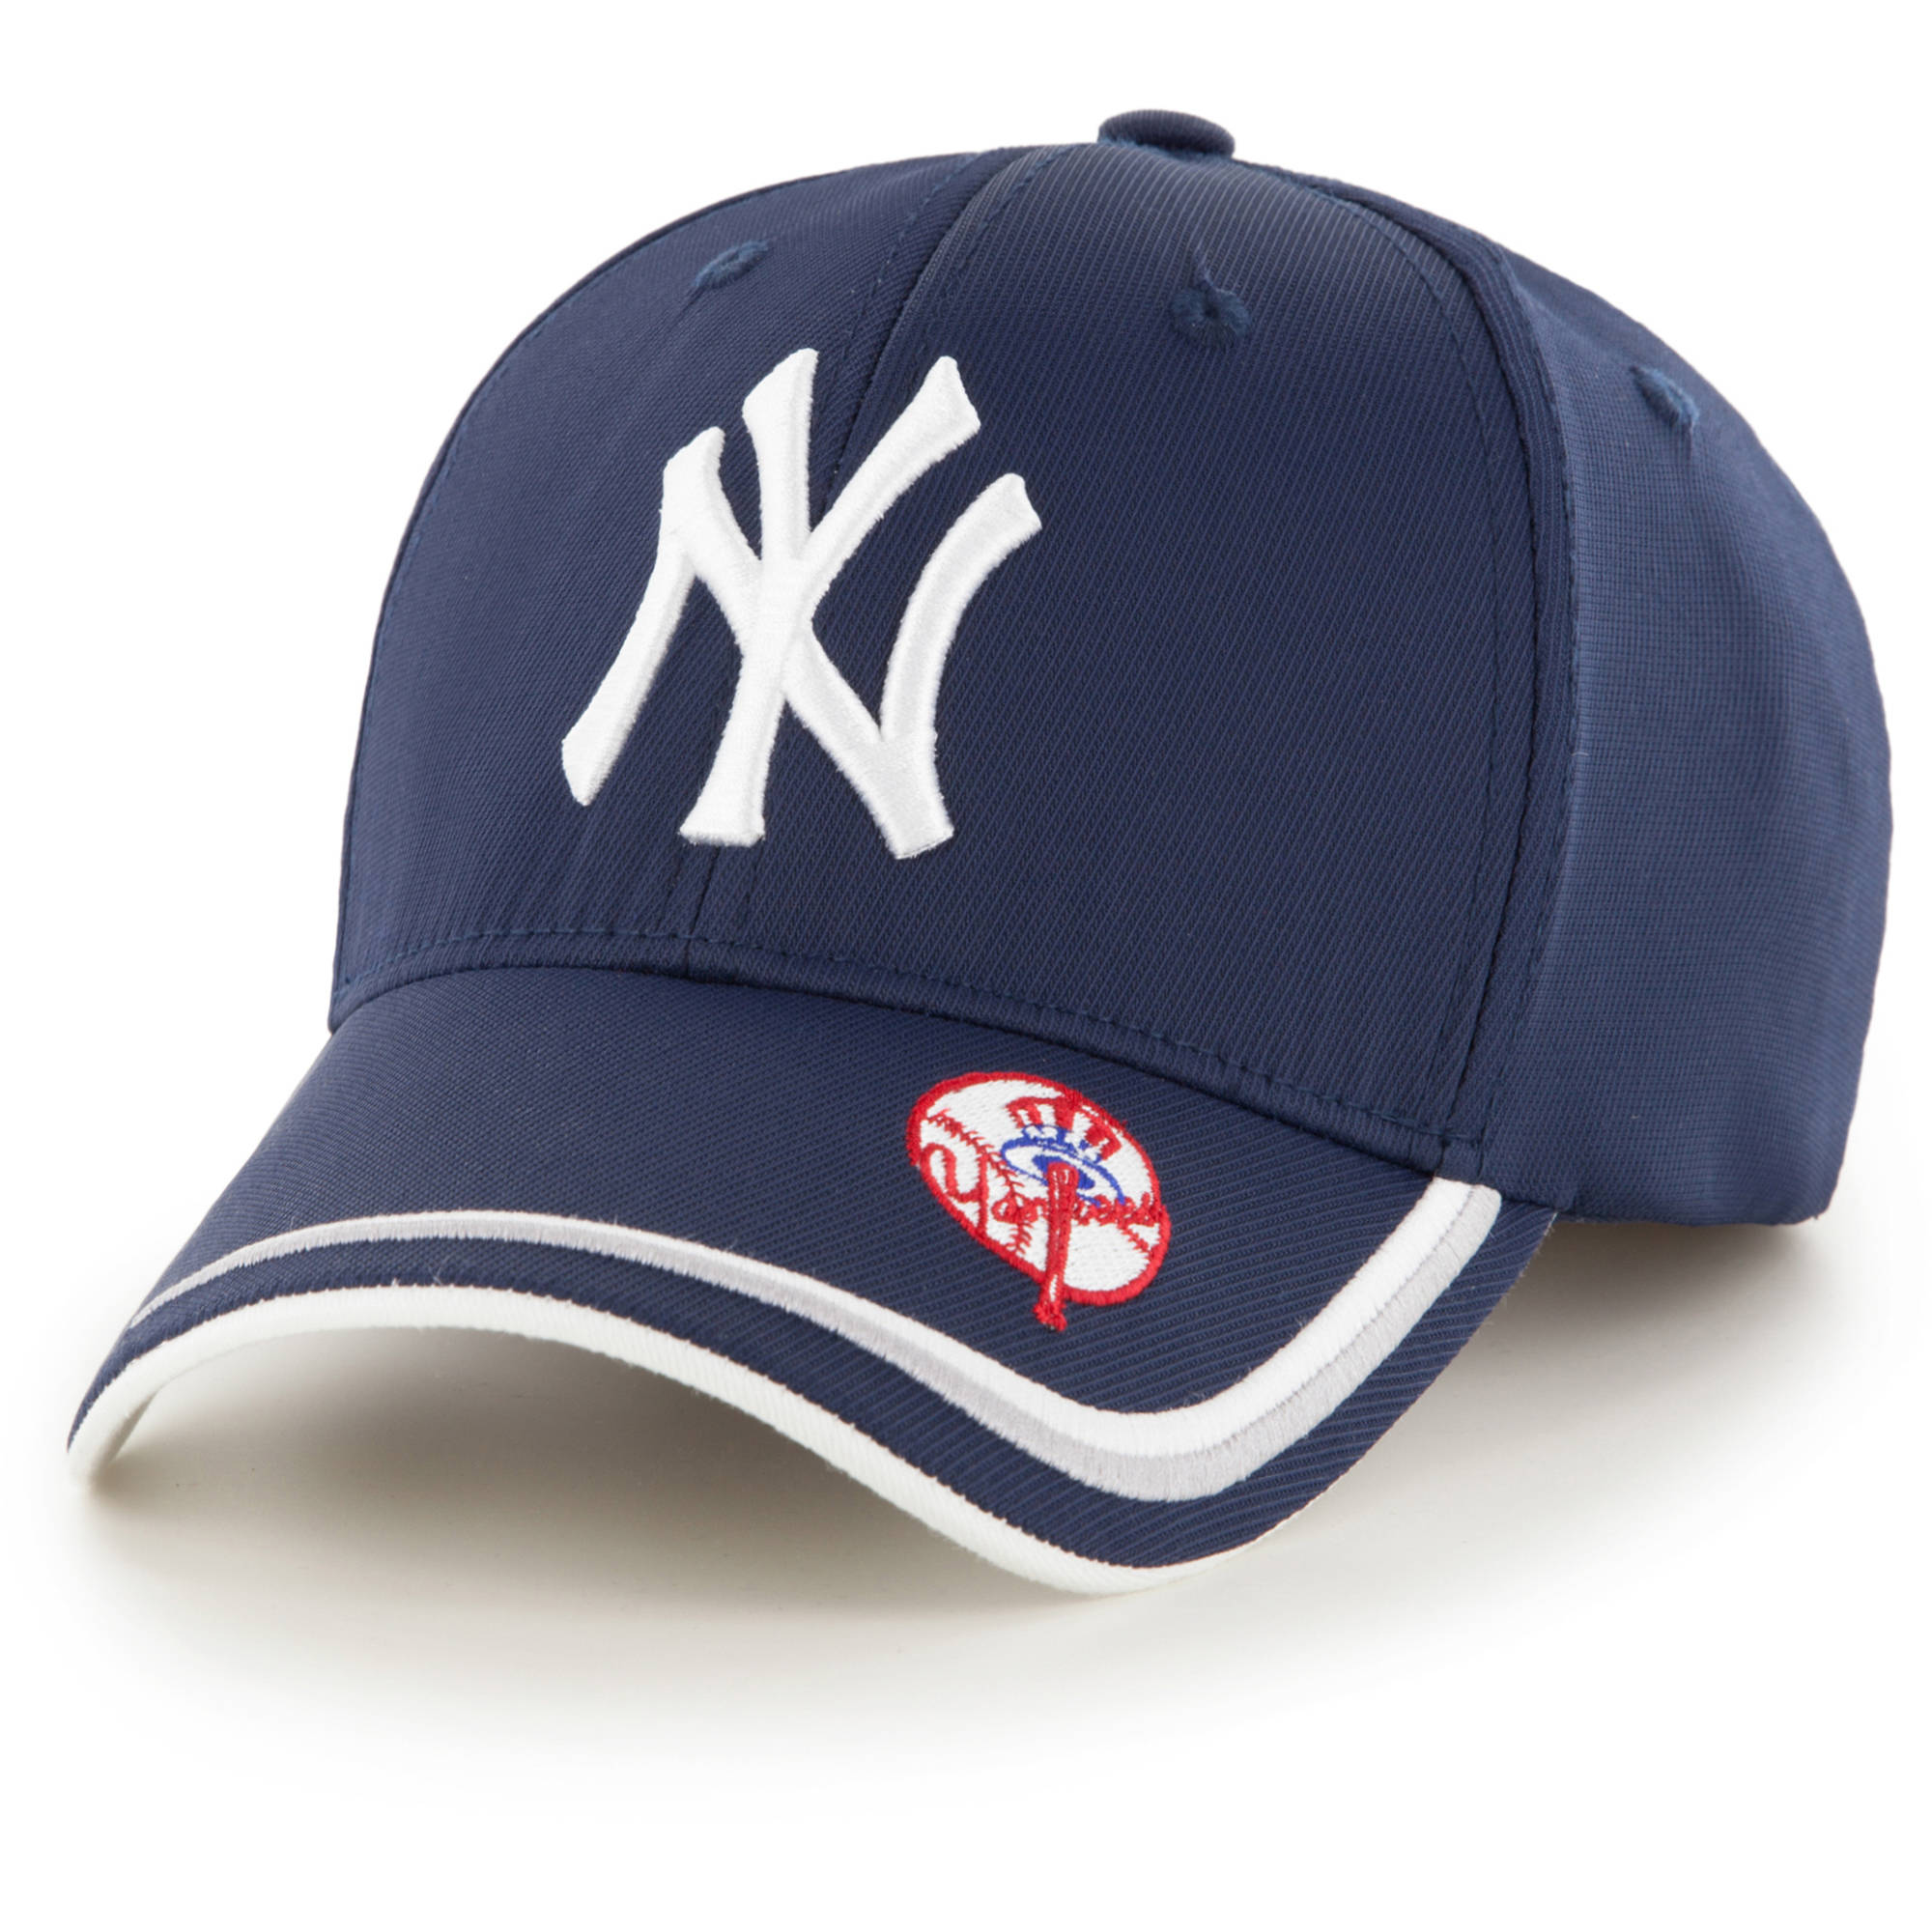 MLB New York Yankees Forest Cap / Hat by Fan Favorite